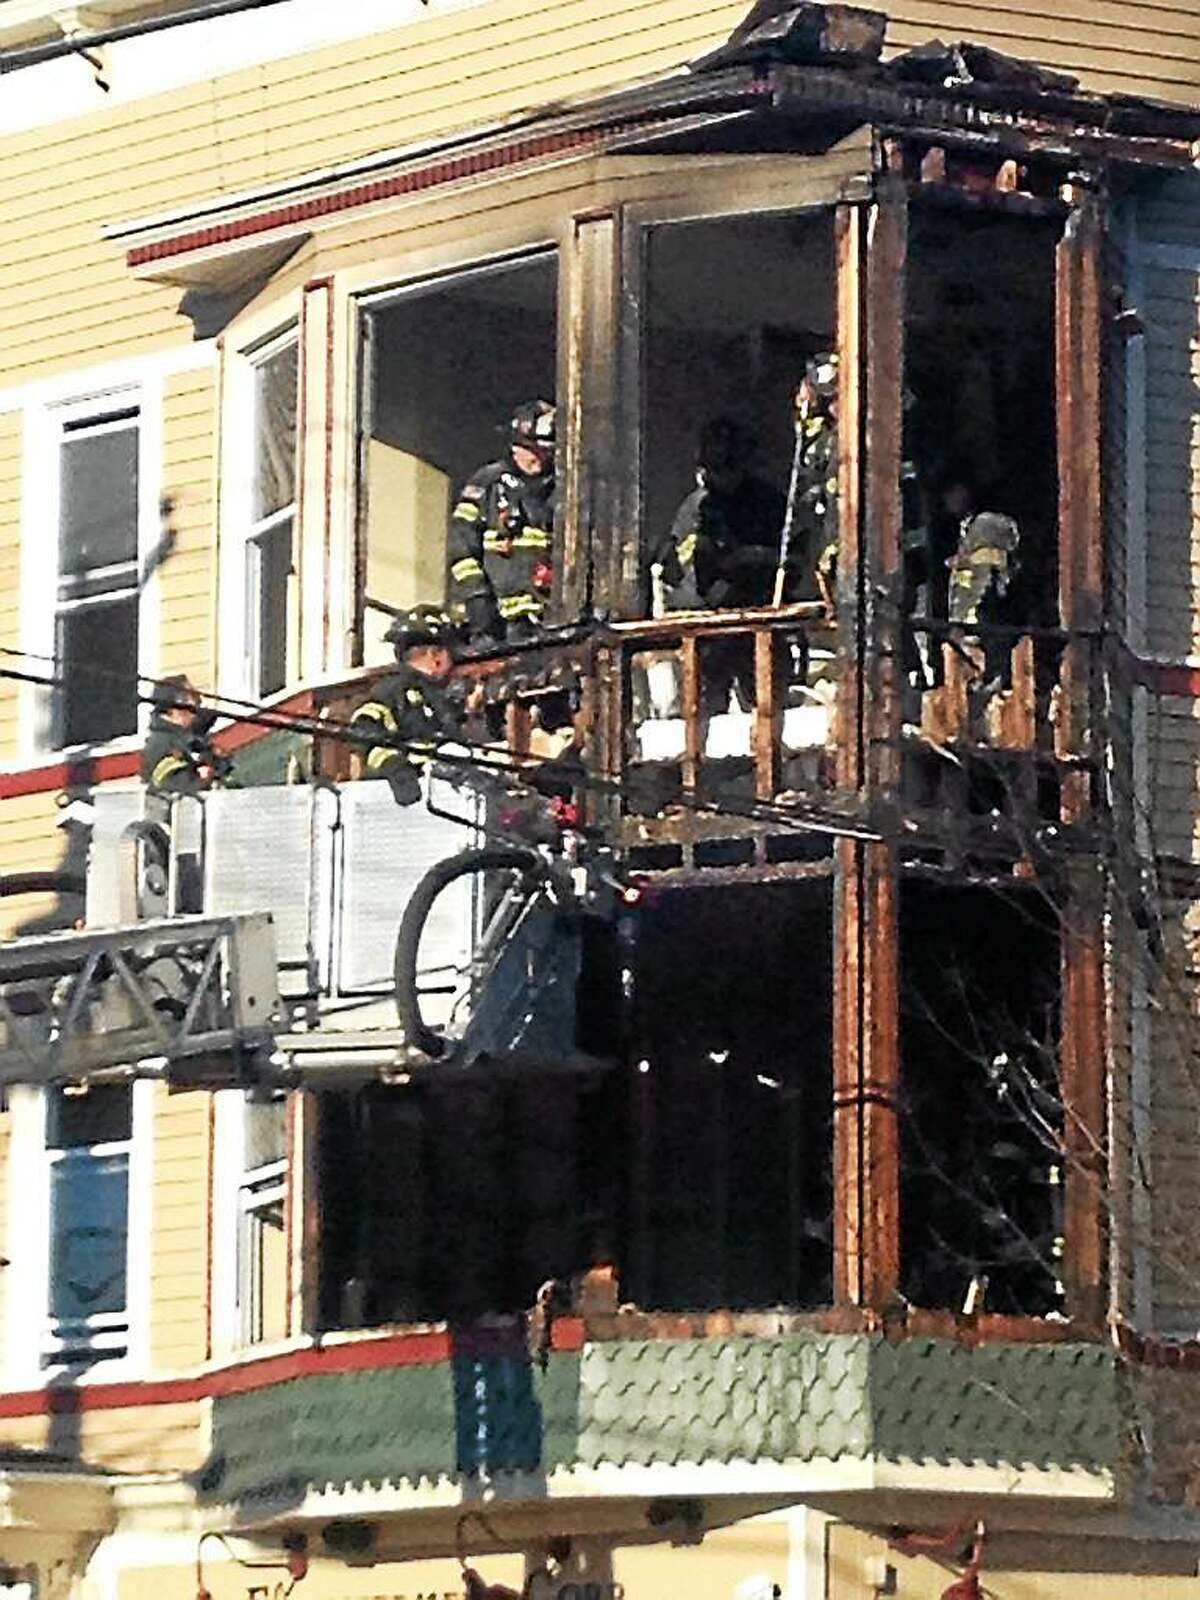 A two-alarm fire caused major damage to a building in Newhallville and reportedly displaced 12 people Monday afternoon.